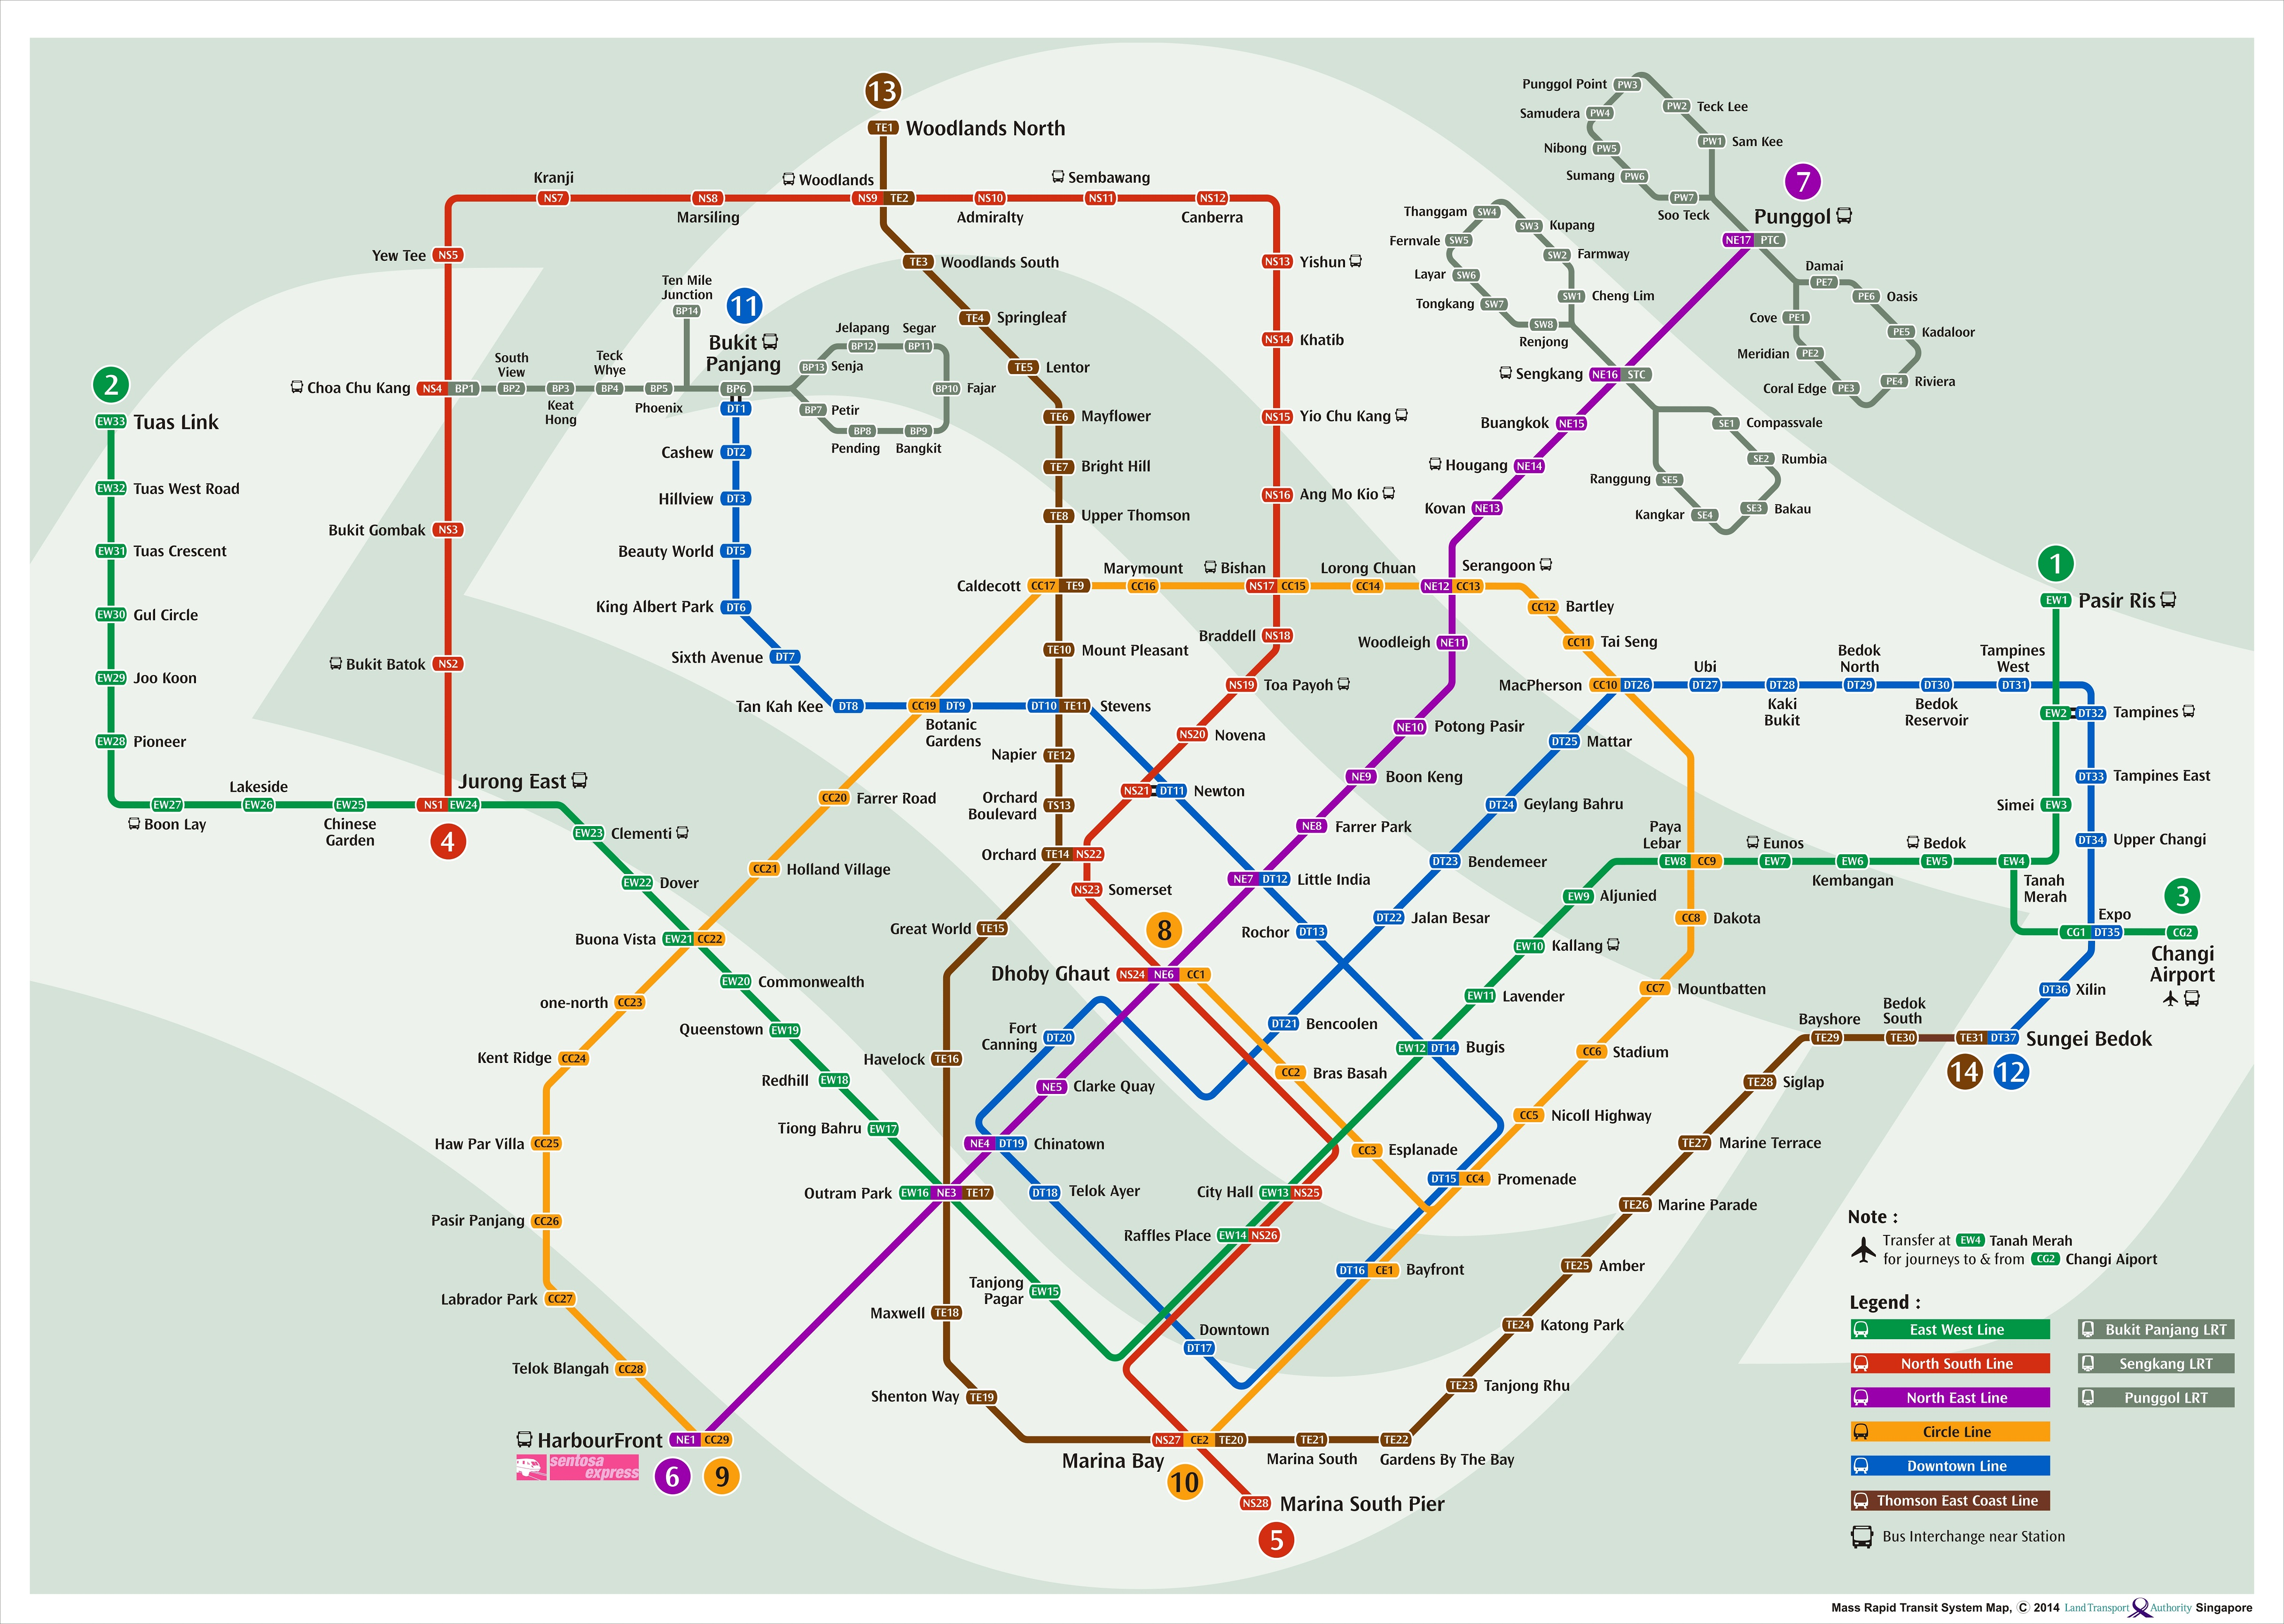 new-mrt-stations-aug-2014 properties